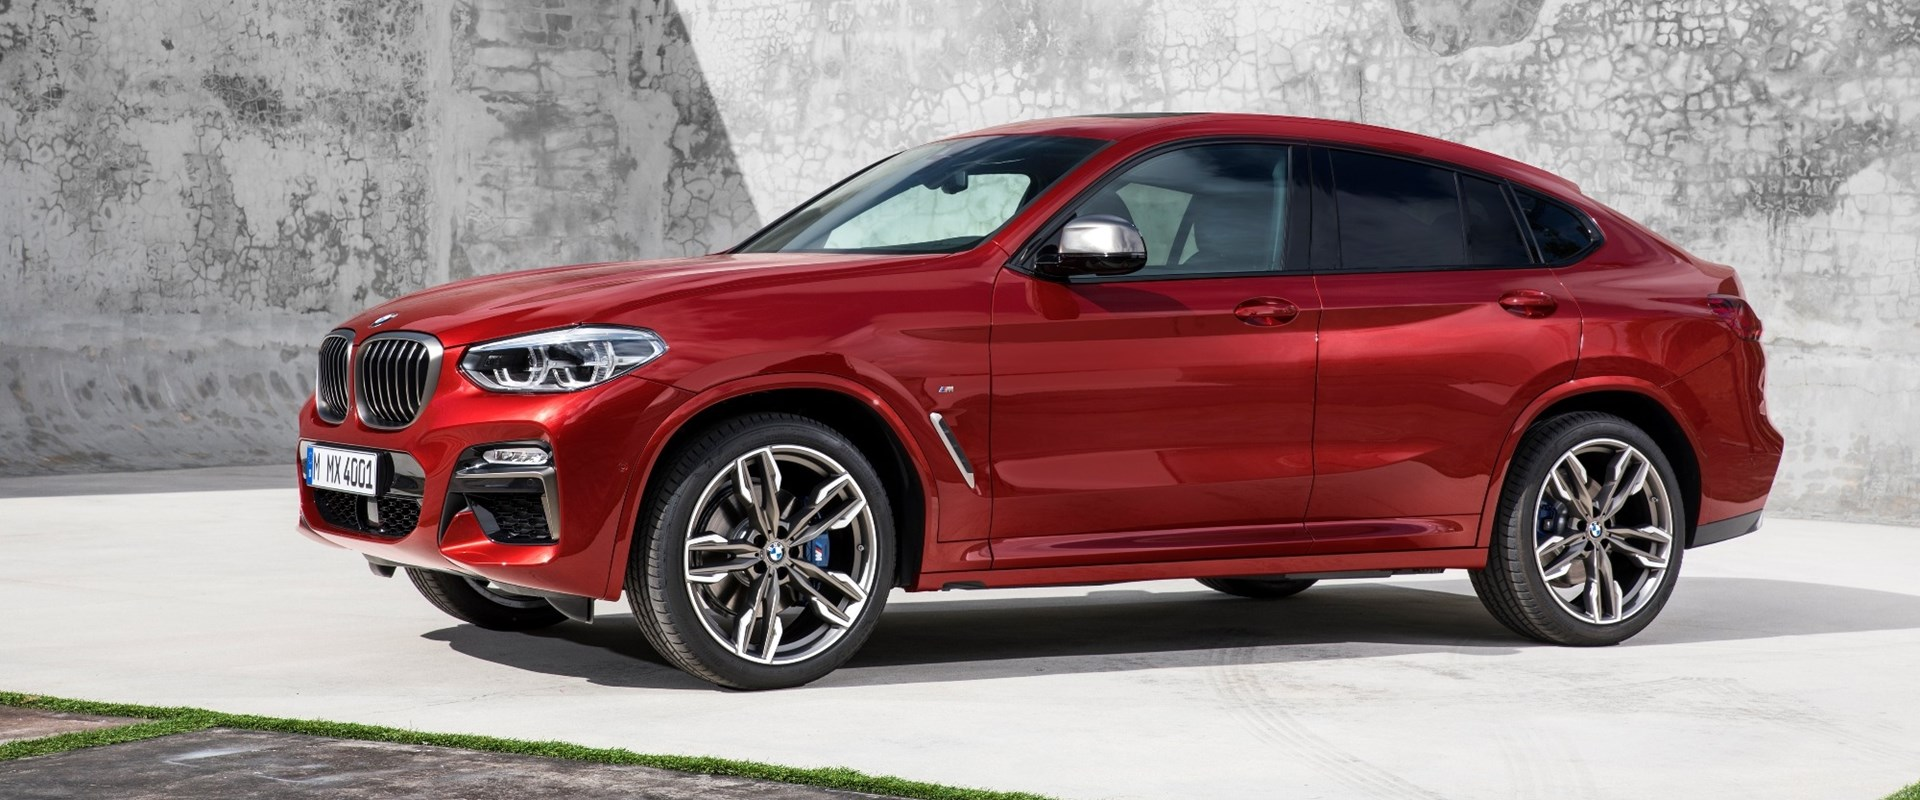 2019 bmw x4 first look review your x3 coupe has arrived carbuzz. Black Bedroom Furniture Sets. Home Design Ideas